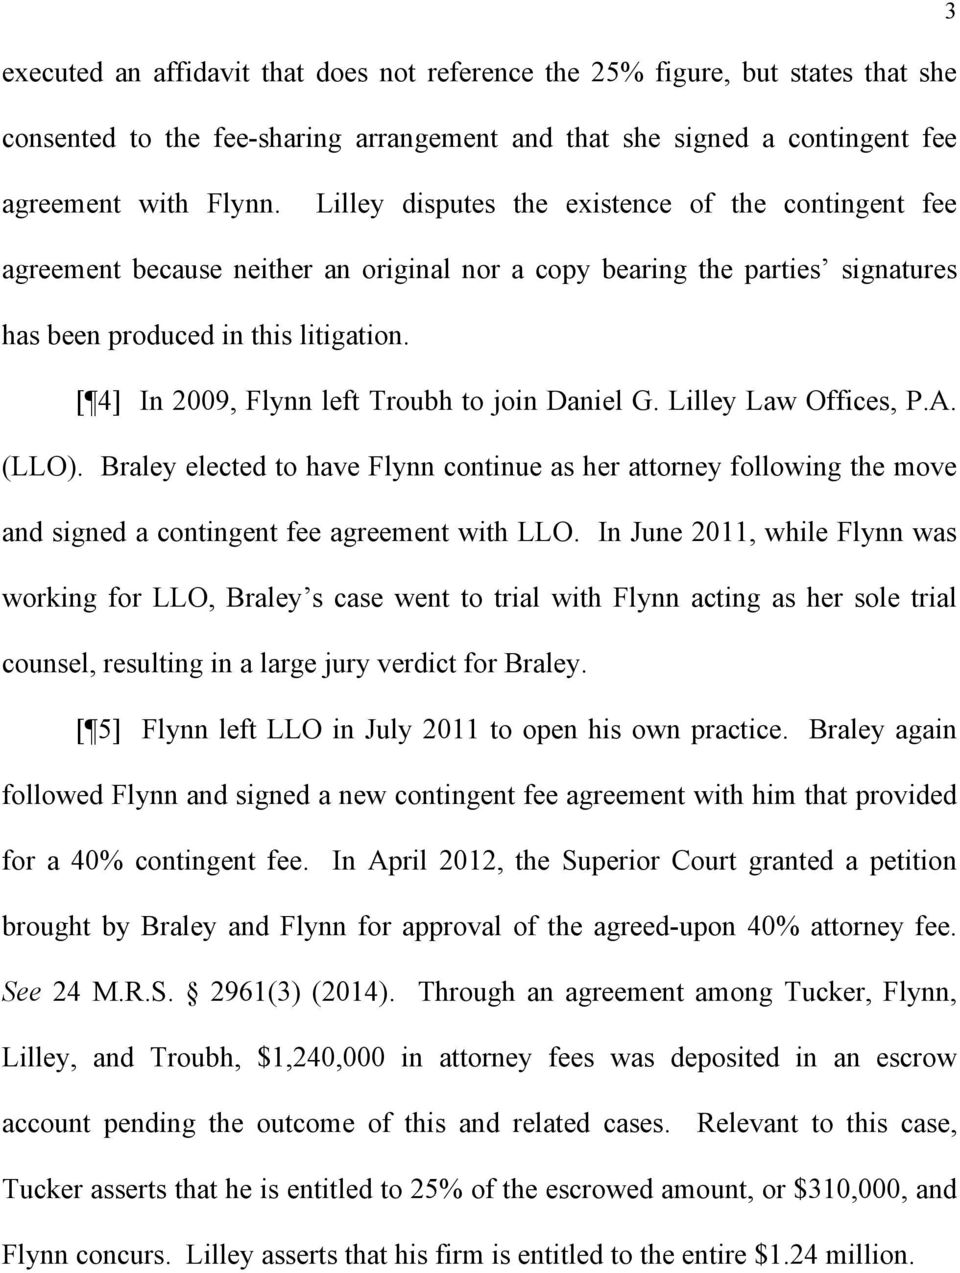 [ 4] In 2009, Flynn left Troubh to join Daniel G. Lilley Law Offices, P.A. (LLO).